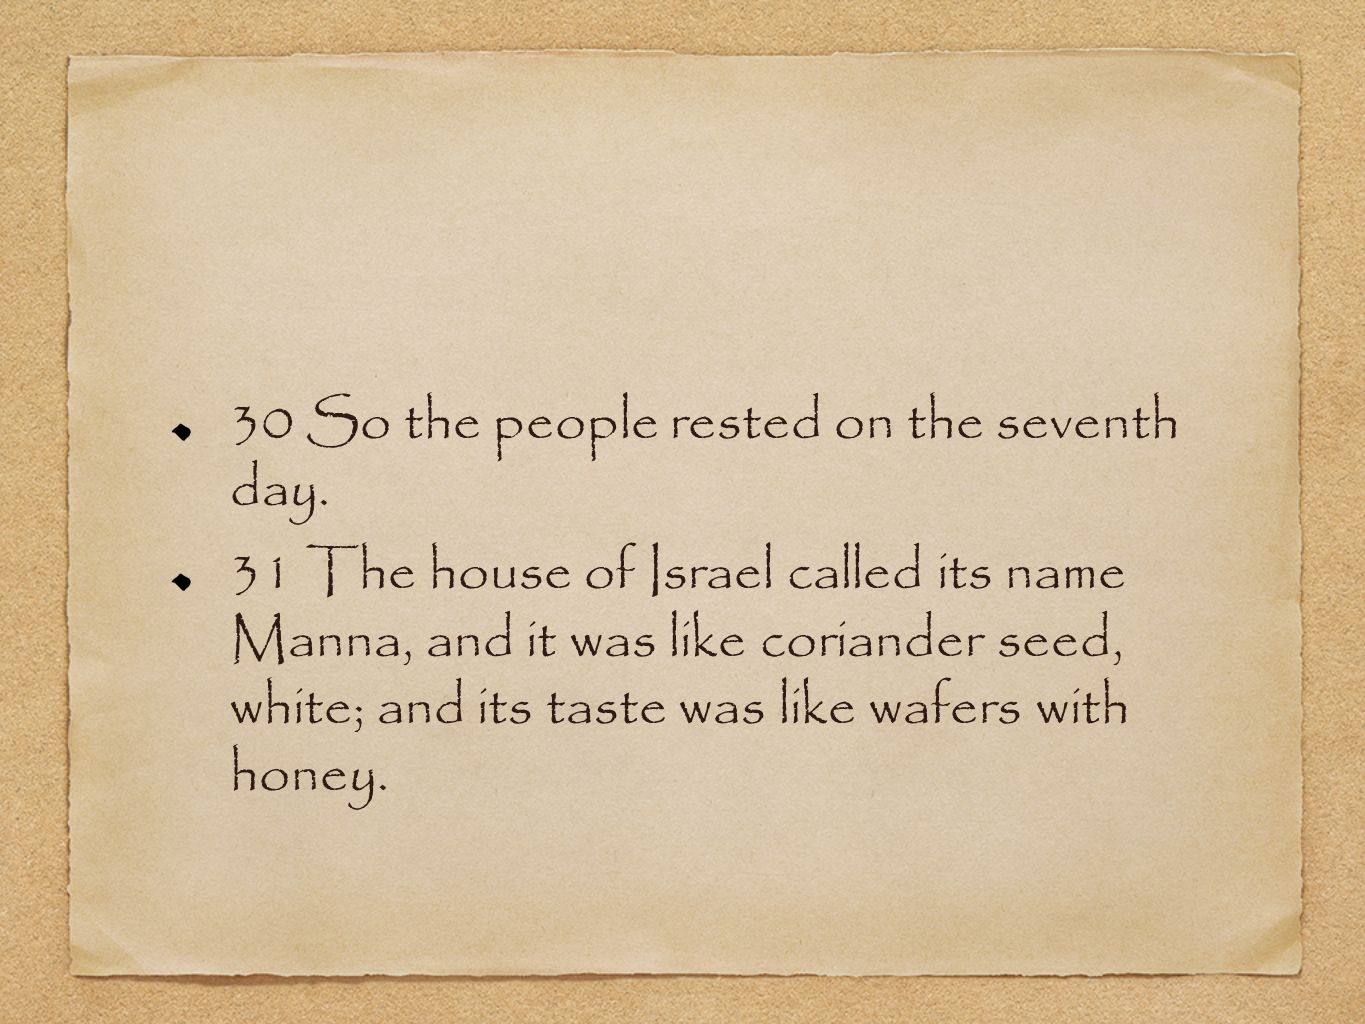 30 So the people rested on the seventh day. 31 The house of Israel called its name Manna, and it was like coriander seed, white; and its taste was lik